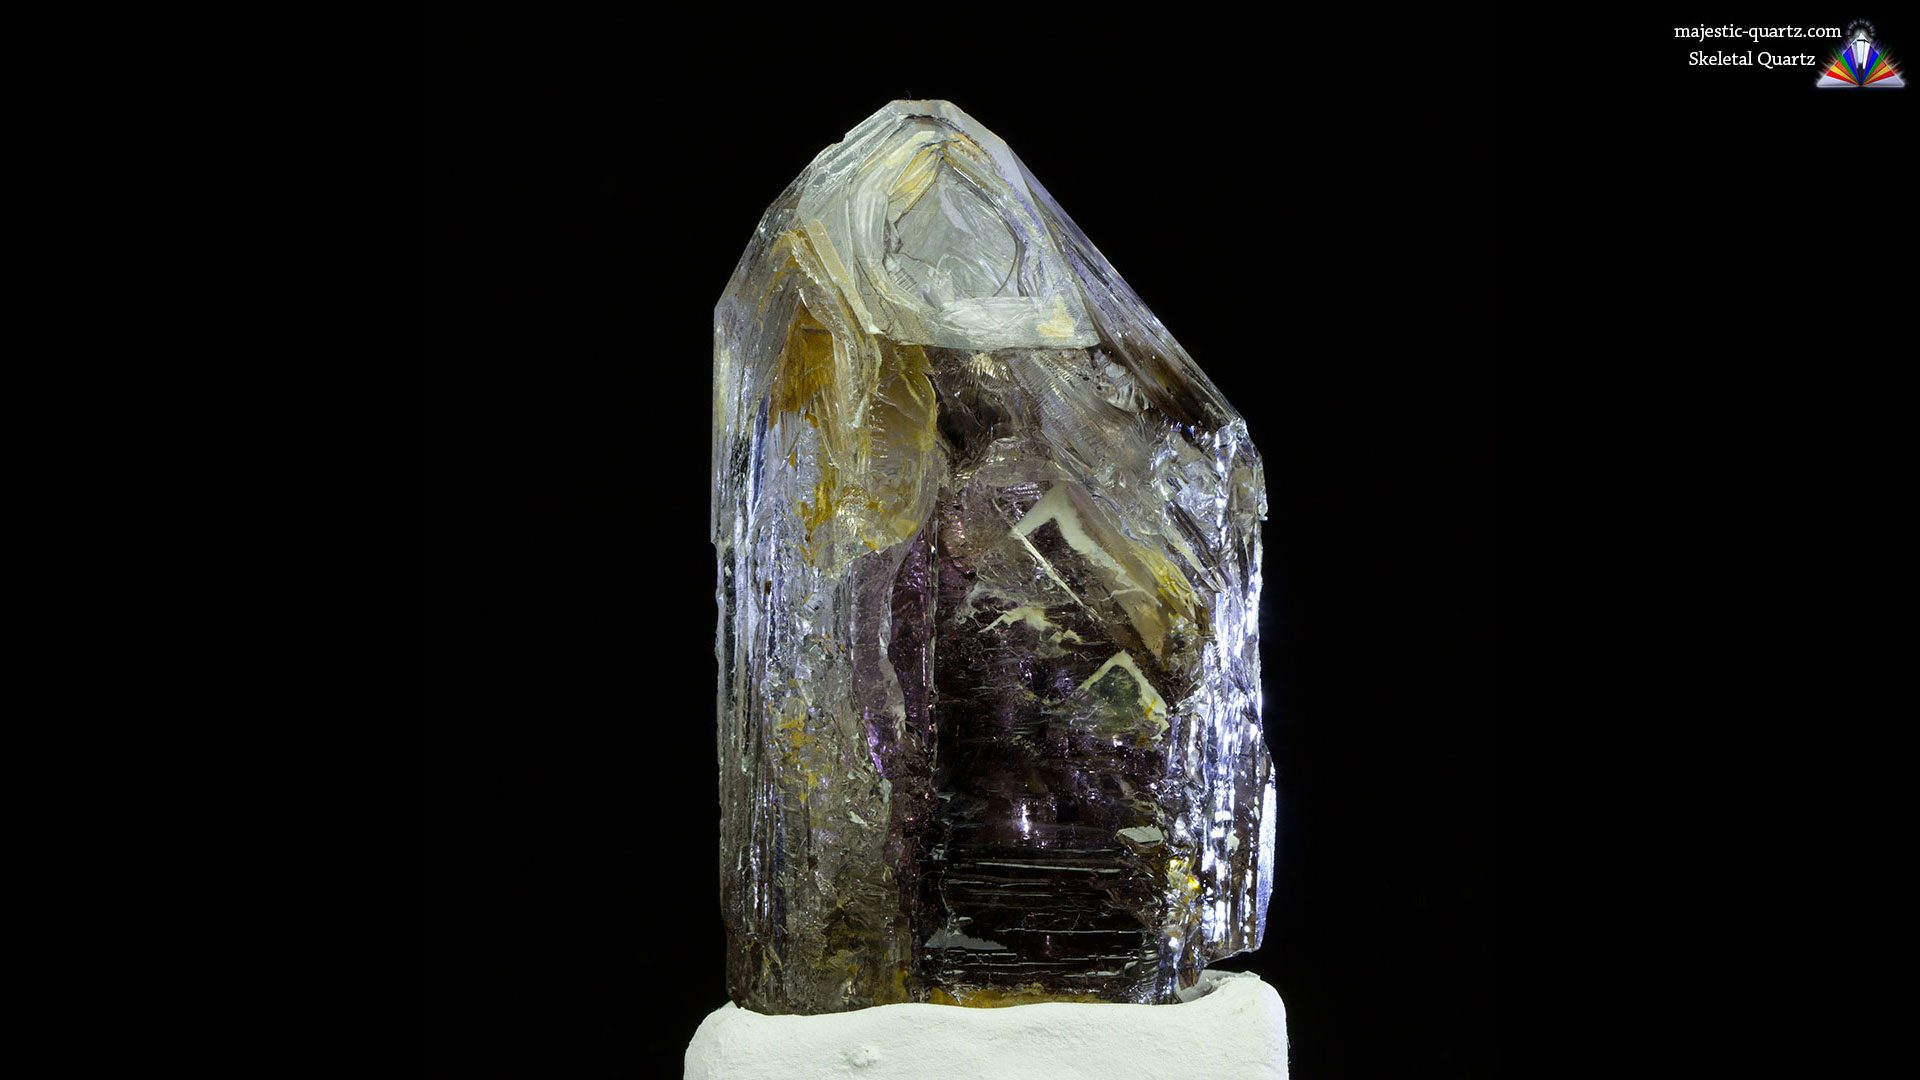 Smoky Amethyst Skeletal Quartz Crystal - Photograph By Anthony Bradford